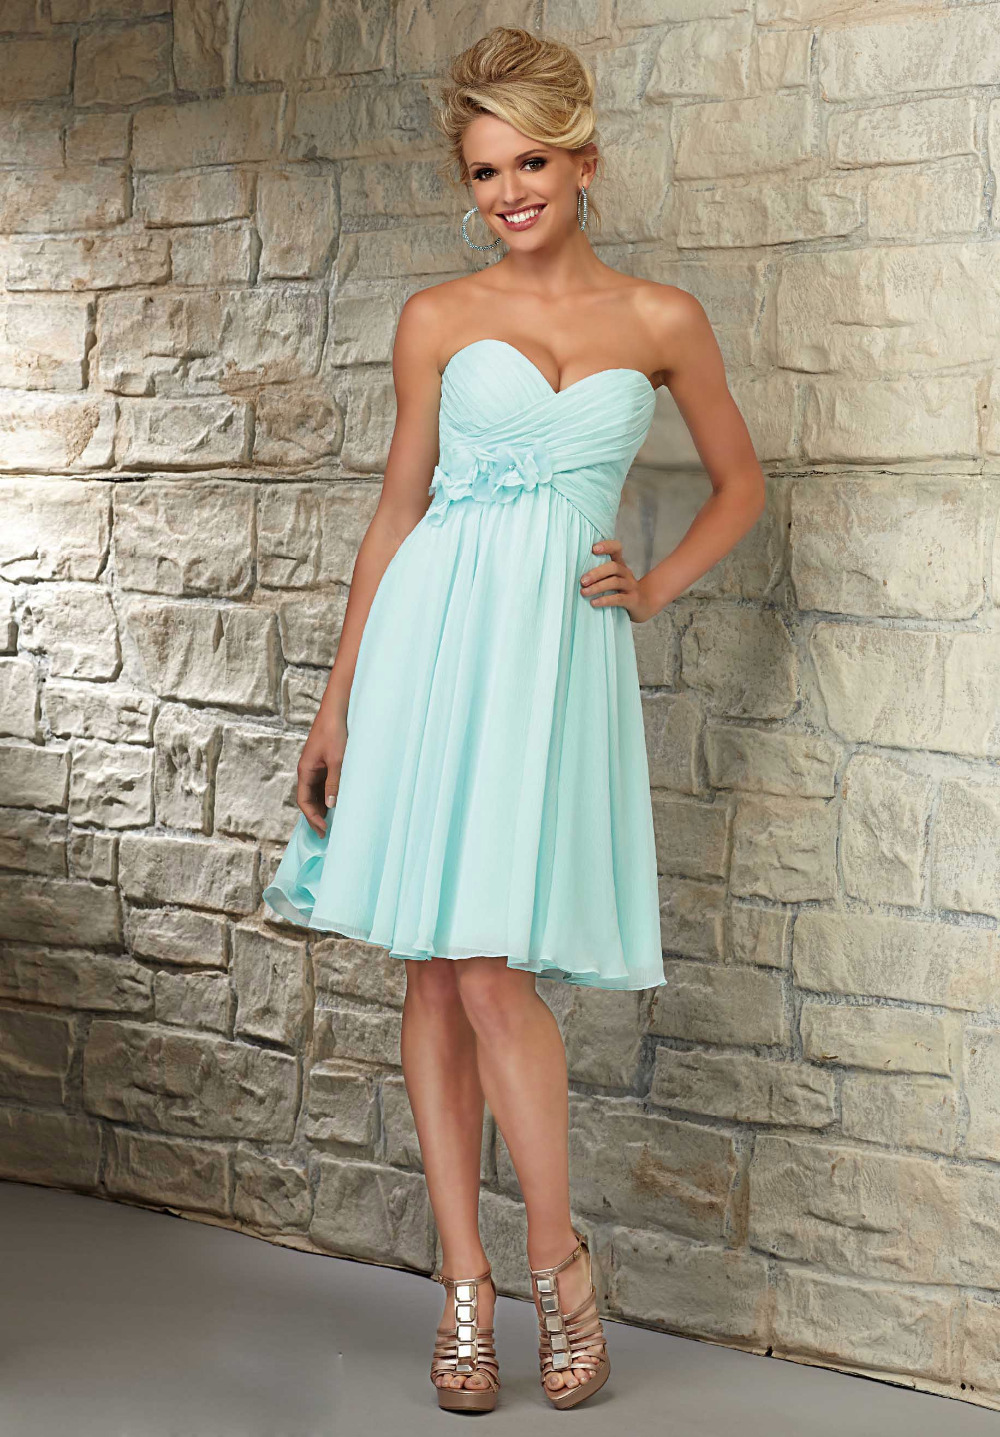 Fullsize Of Turquoise Bridesmaid Dresses